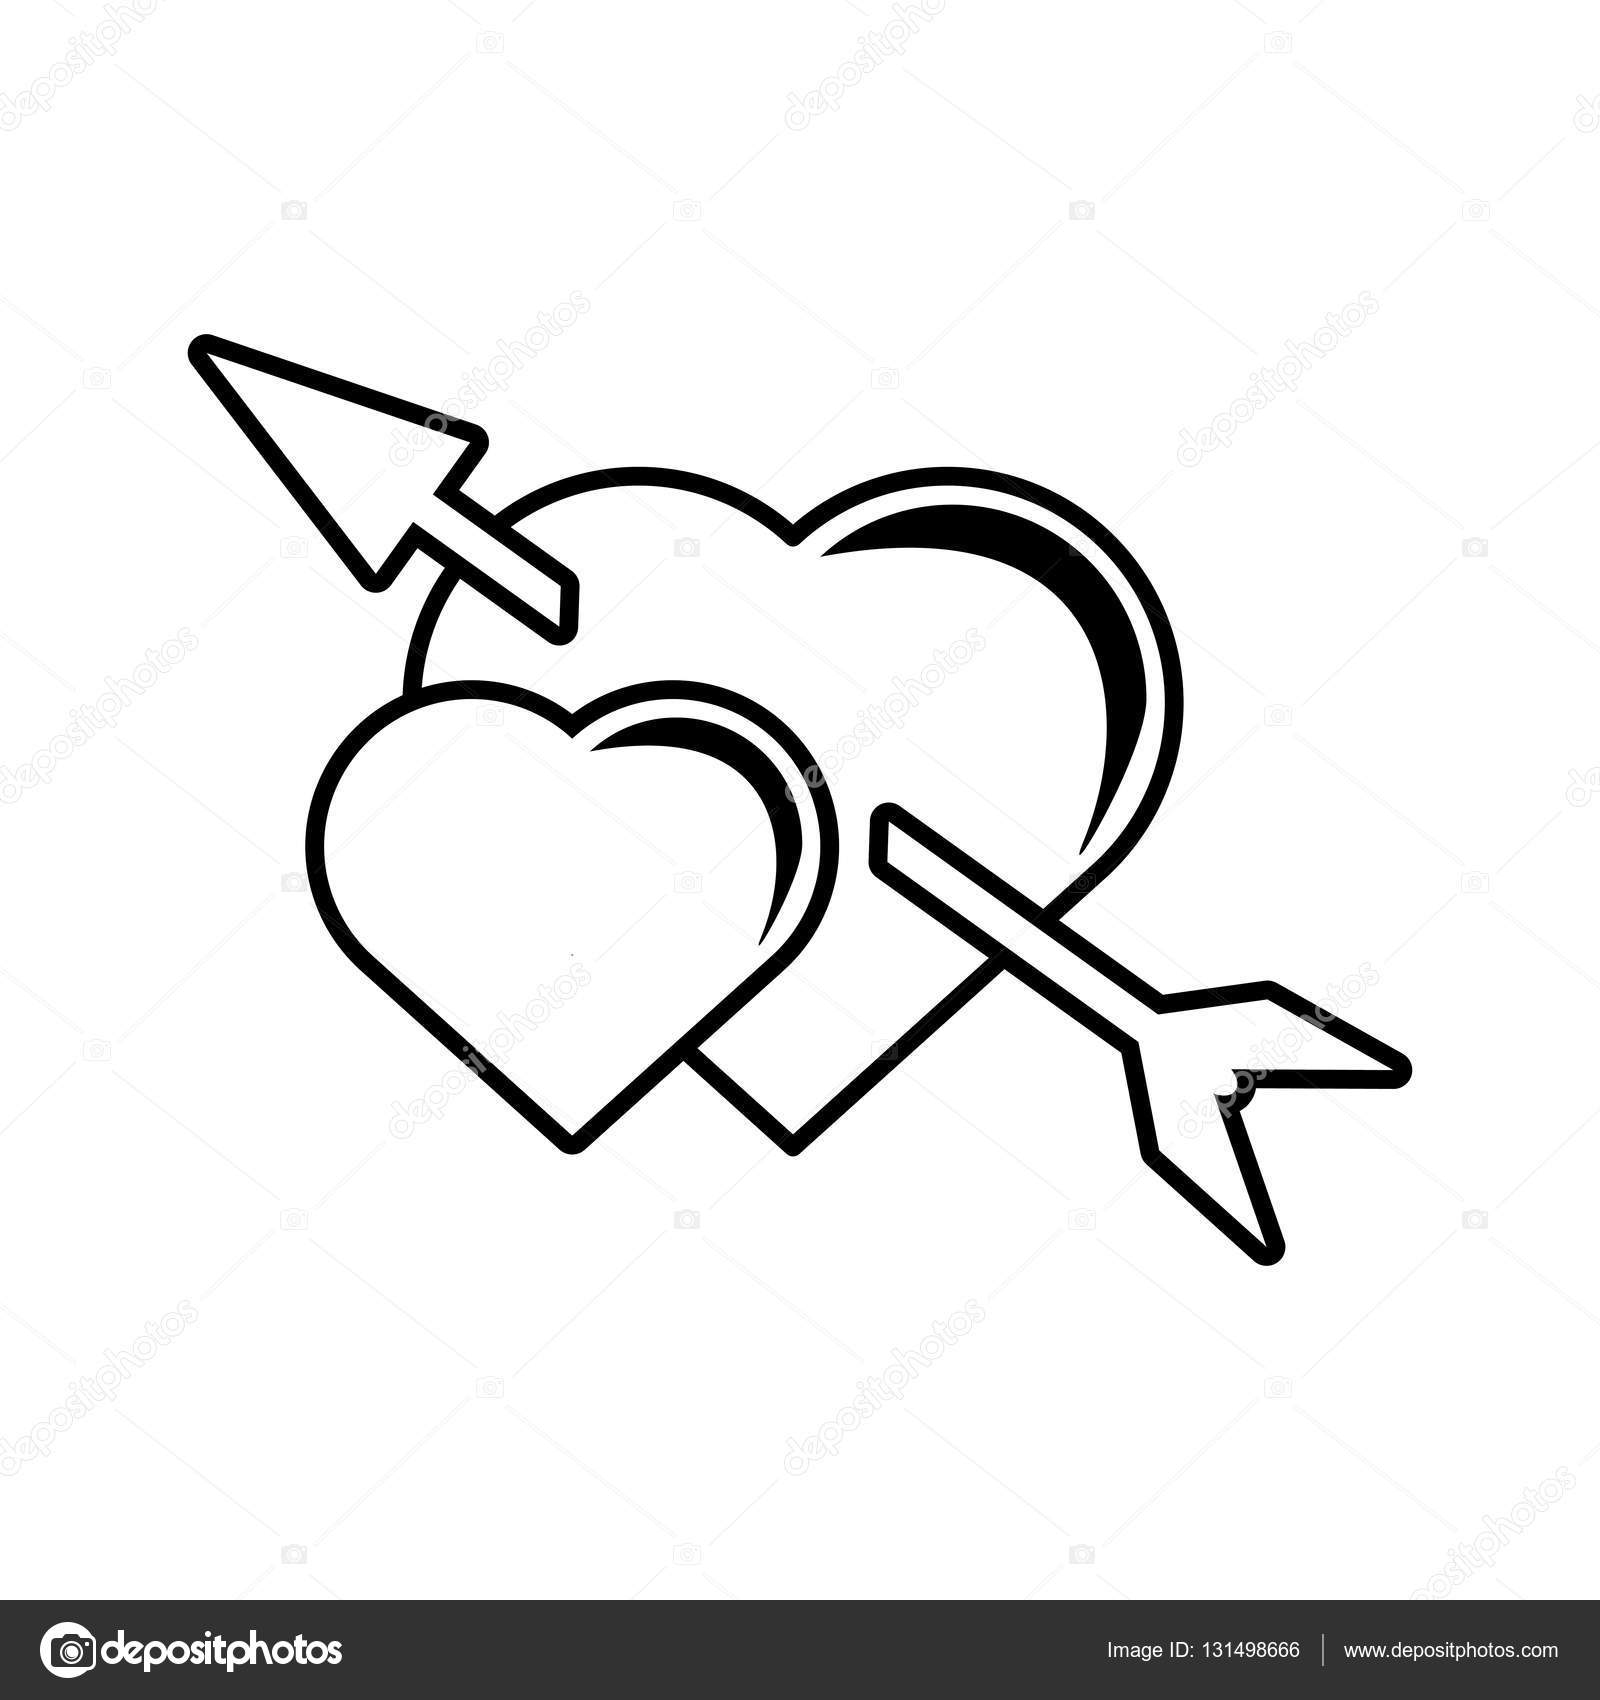 1600x1700 Pictogram Two Heart Arrow Love Valentines Symbol Design Stock